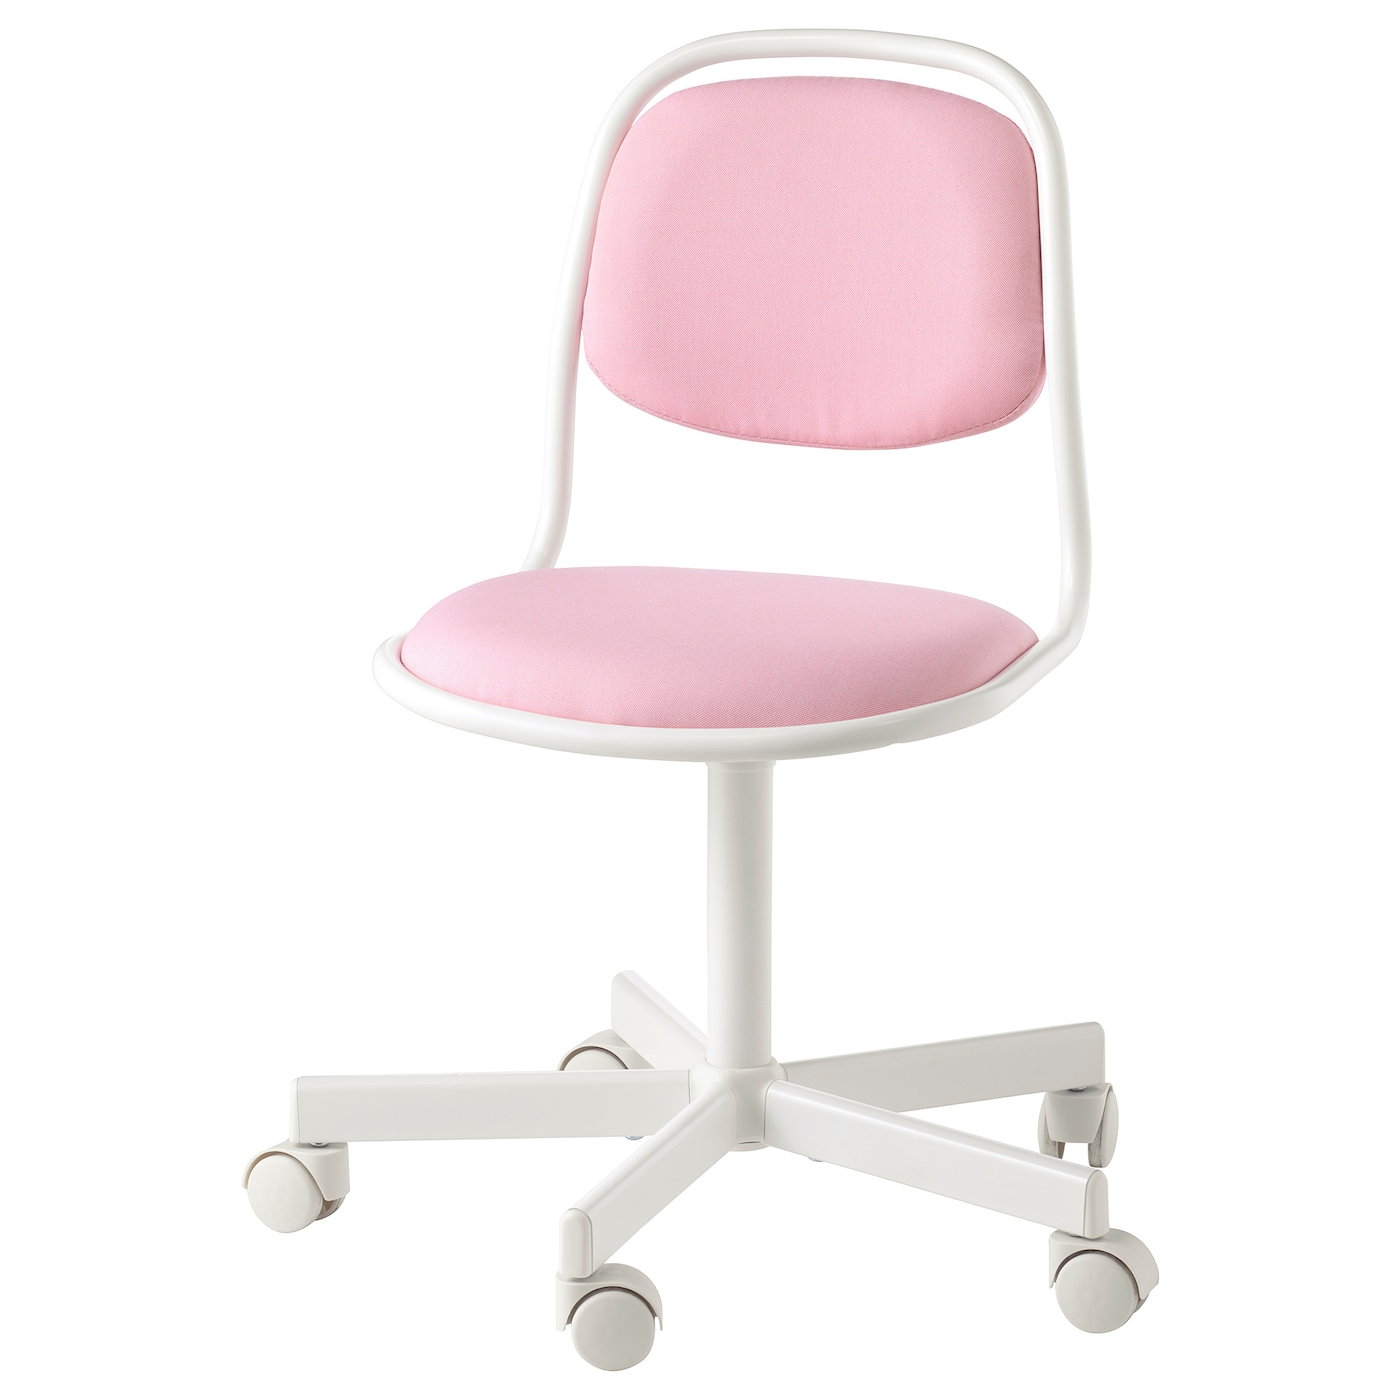 Incredible Childs Desk Chair Orfjall White Vissle Pink Dailytribune Chair Design For Home Dailytribuneorg